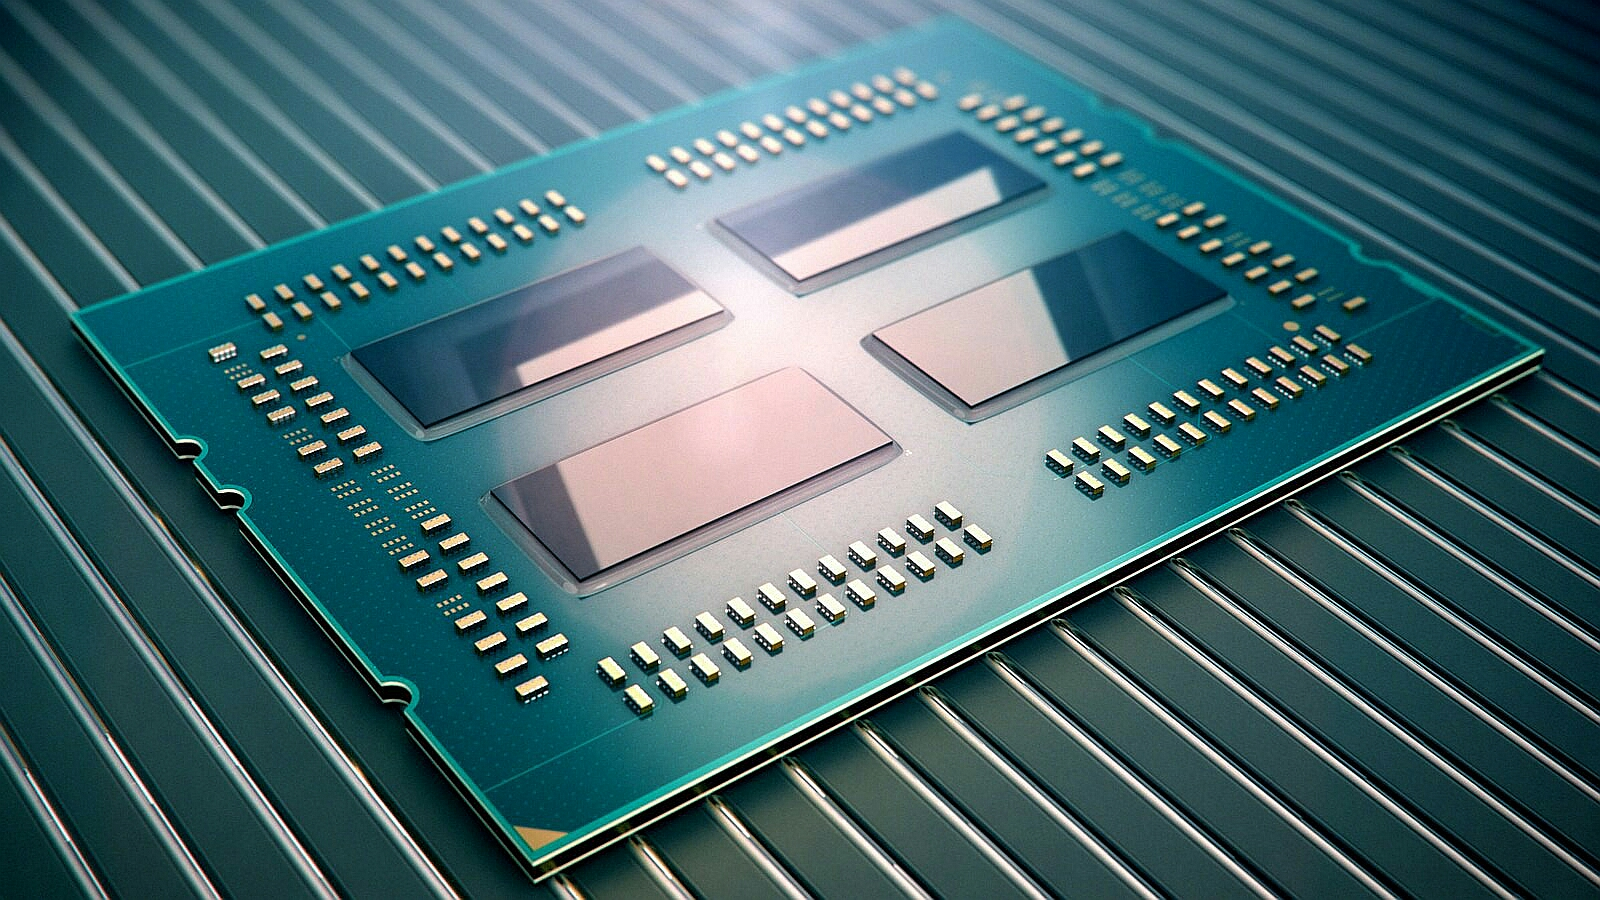 Chiplets promise a new level of computing capabilities